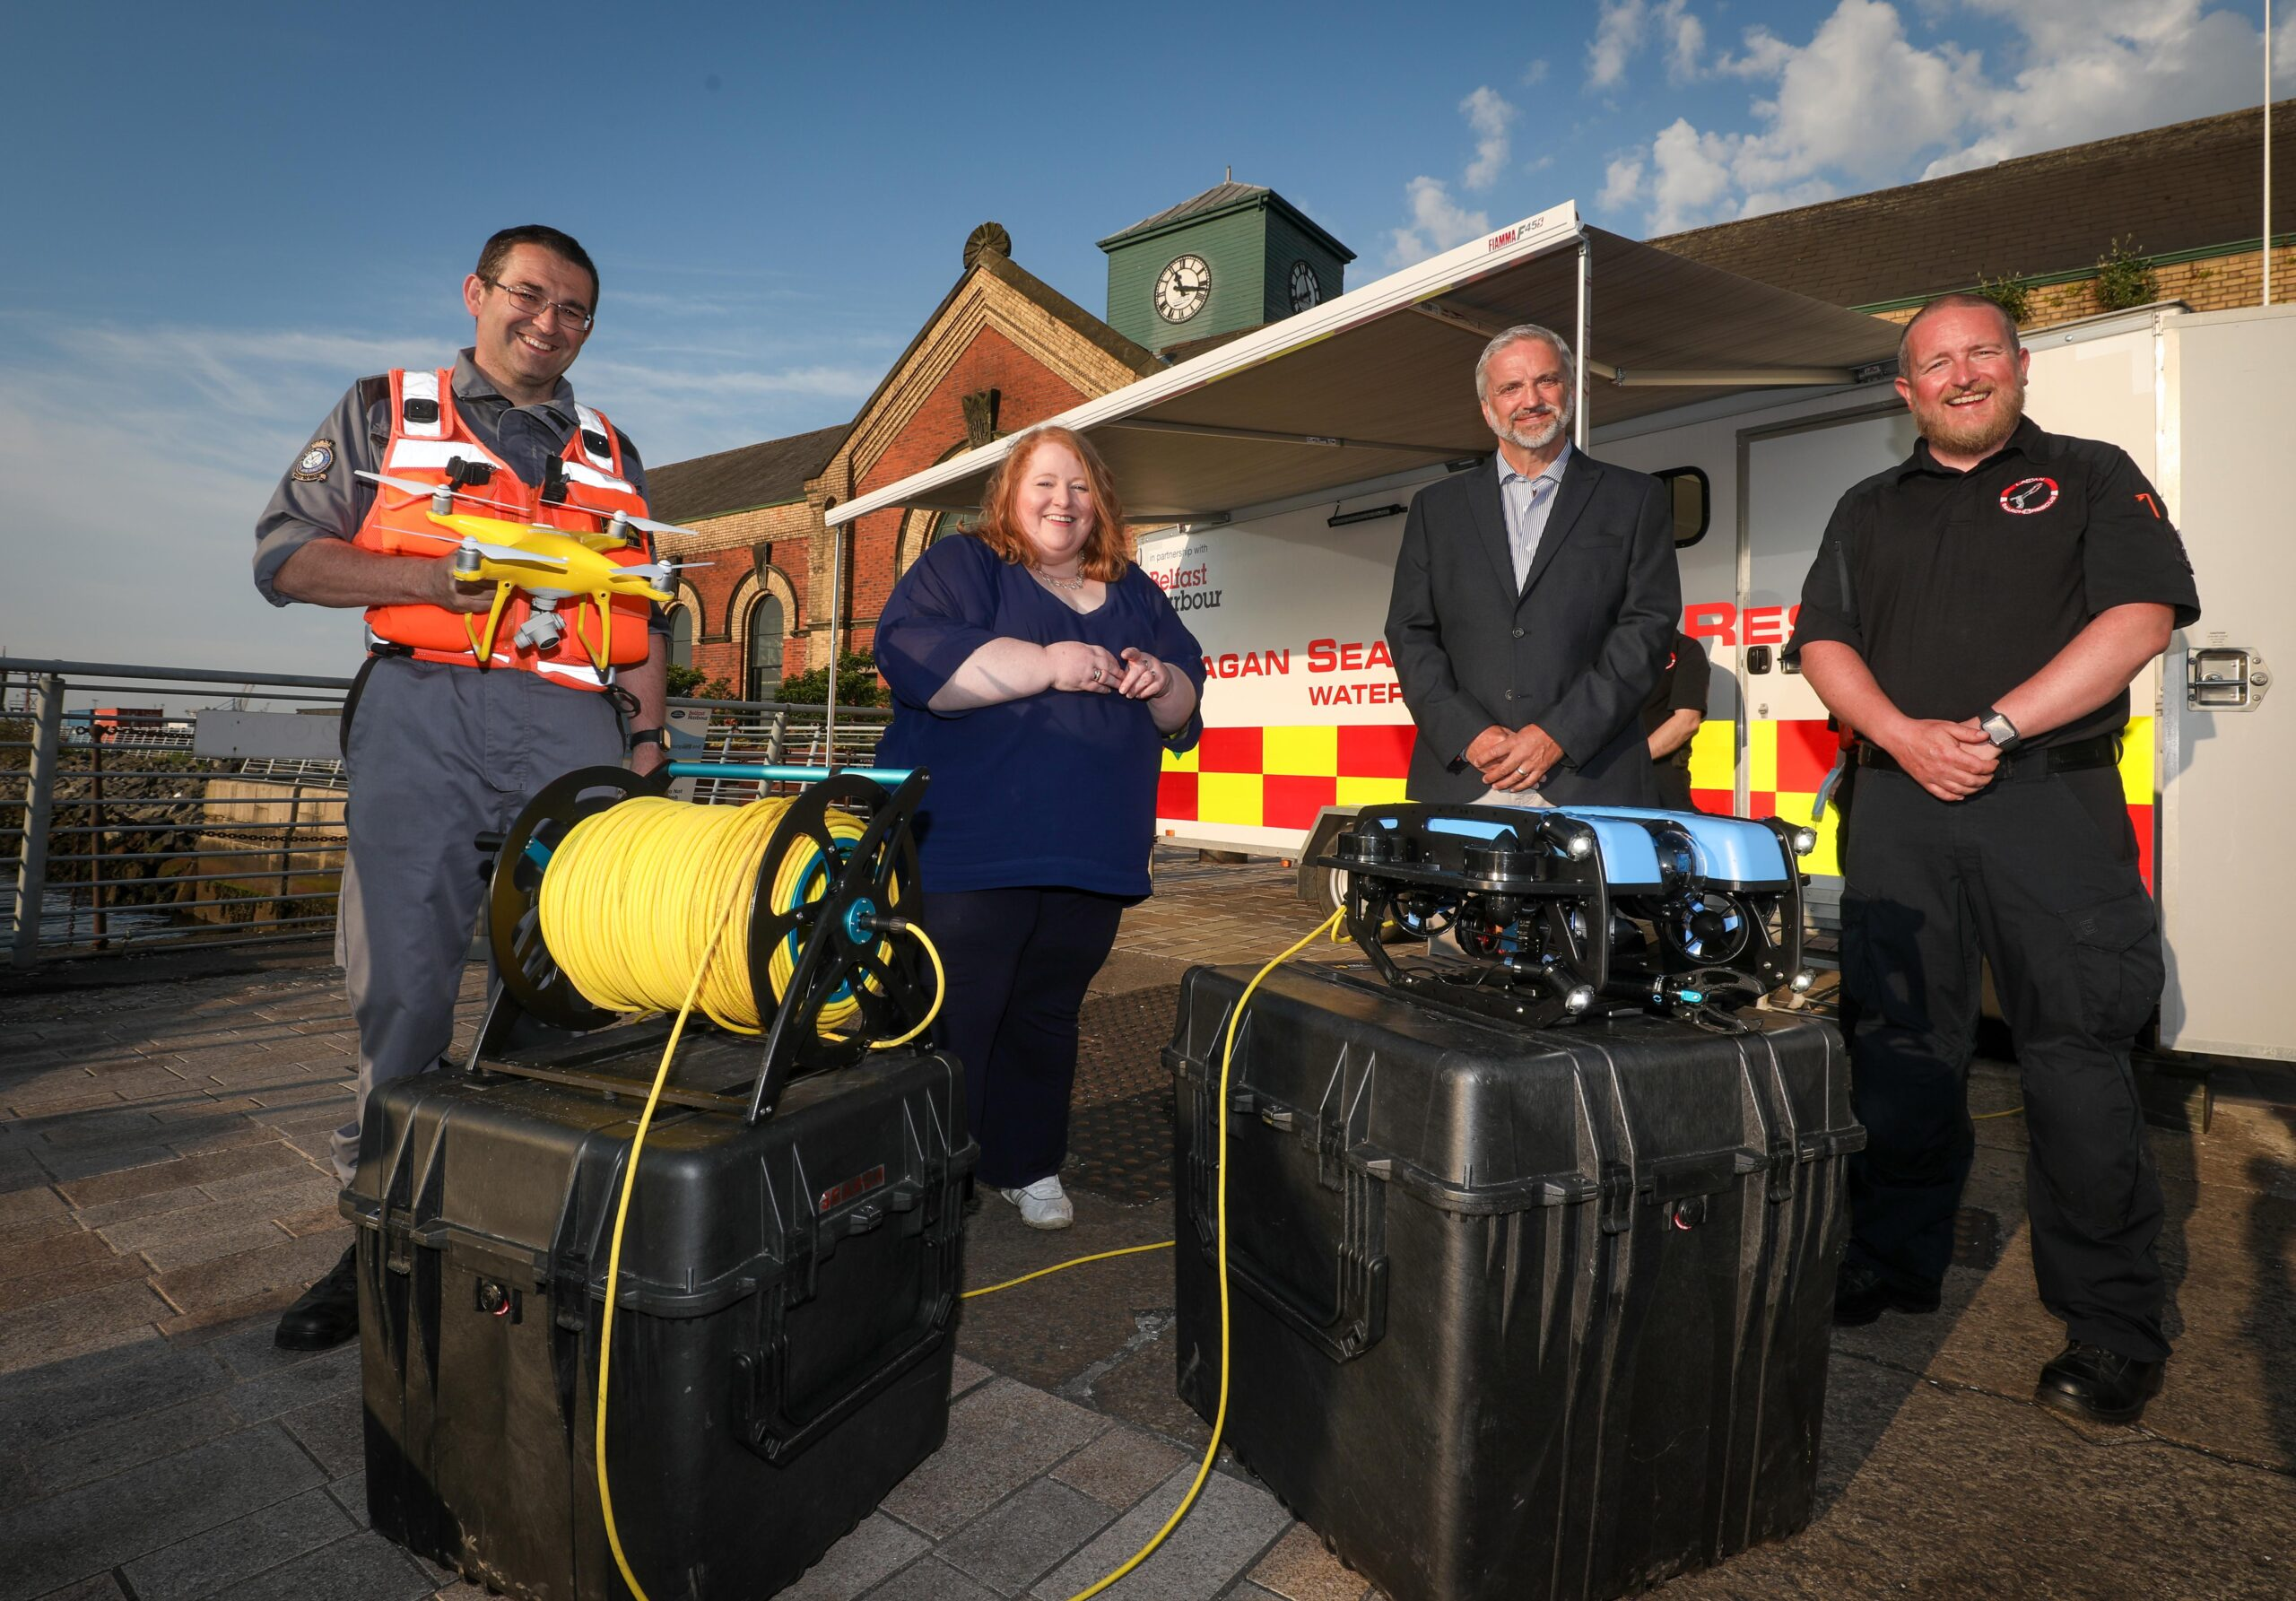 Life-saving efforts of NI search and rescue volunteers applauded - Newry Times - newry news headlines